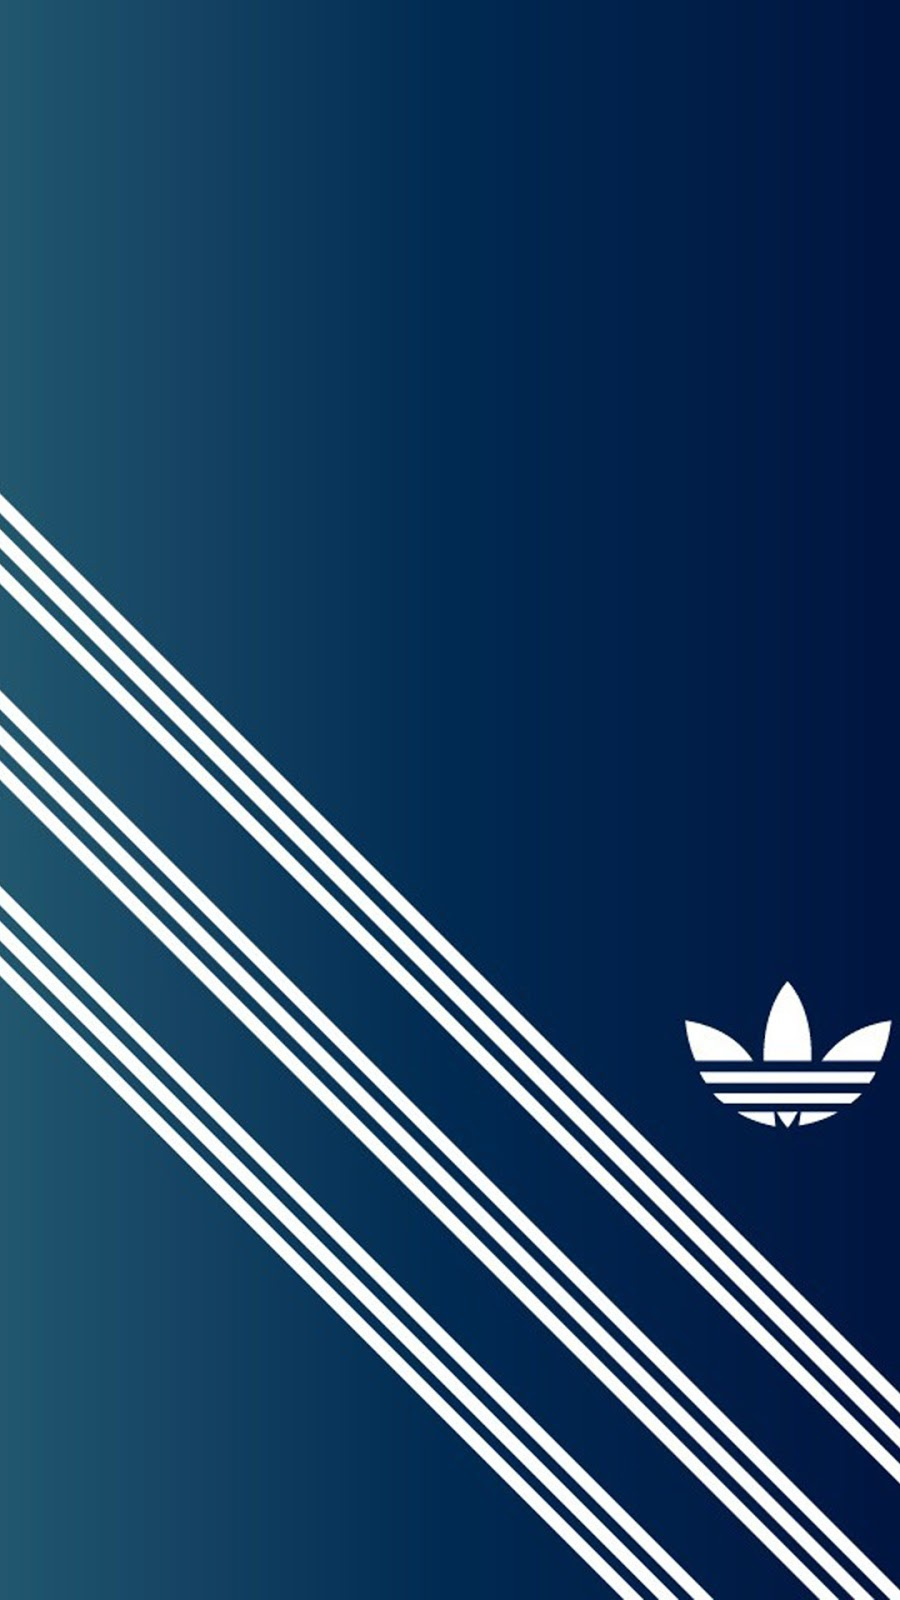 Top 4 Adidas Iphone Wallpaper Hd Sweety Wallpapers